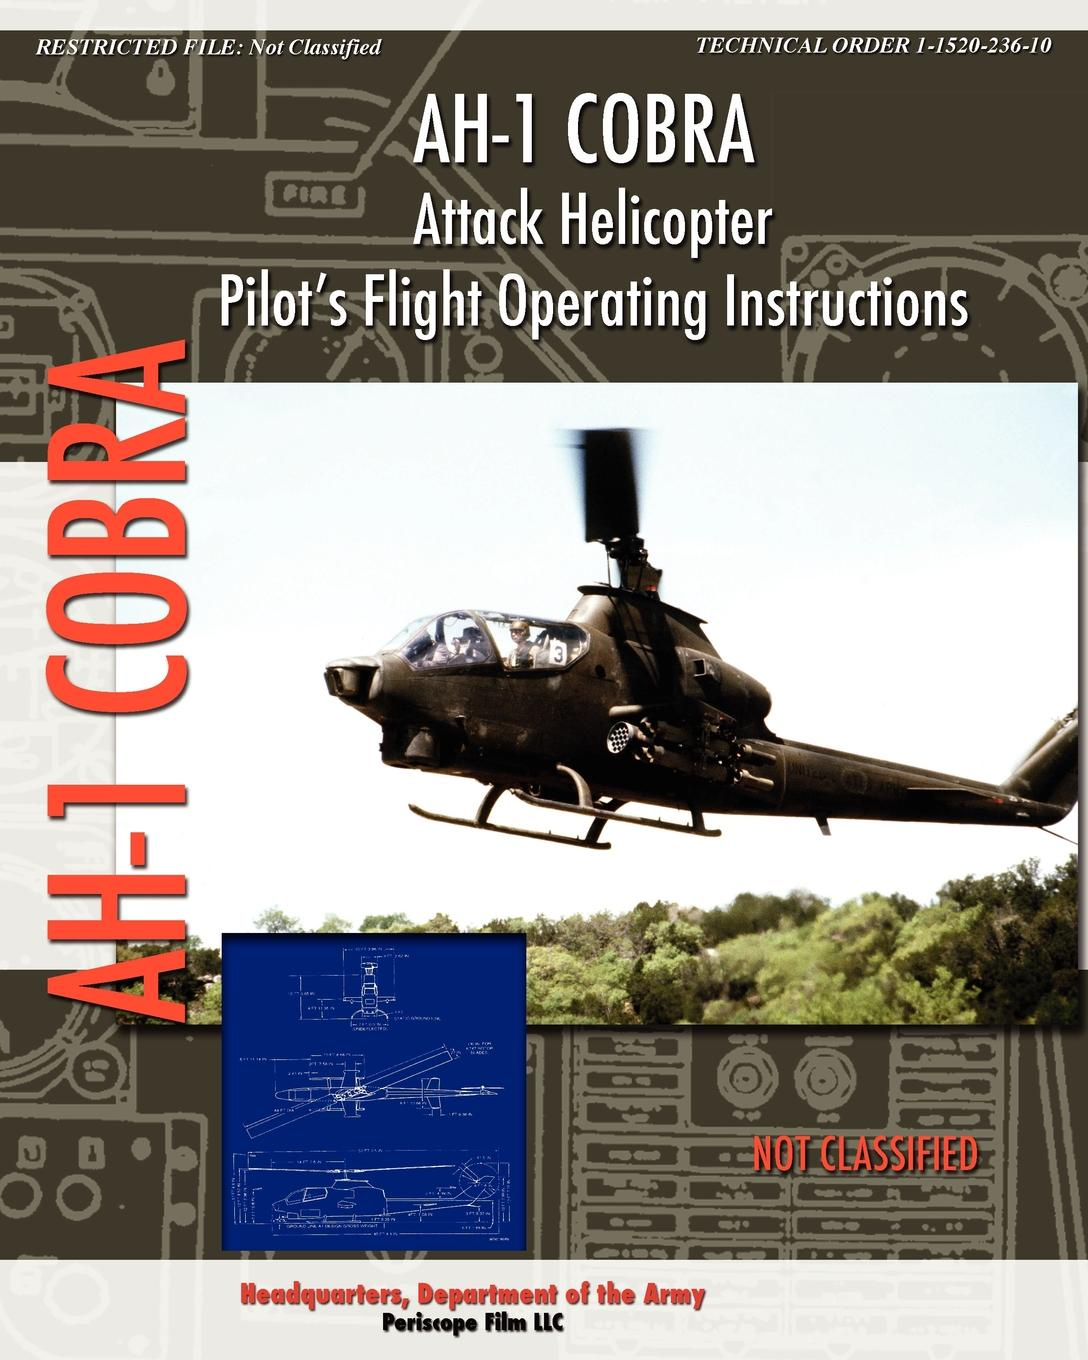 Headquarters Department of the Army AH-1 Cobra Attack Helicopter Pilot's Flight Operating Instructions